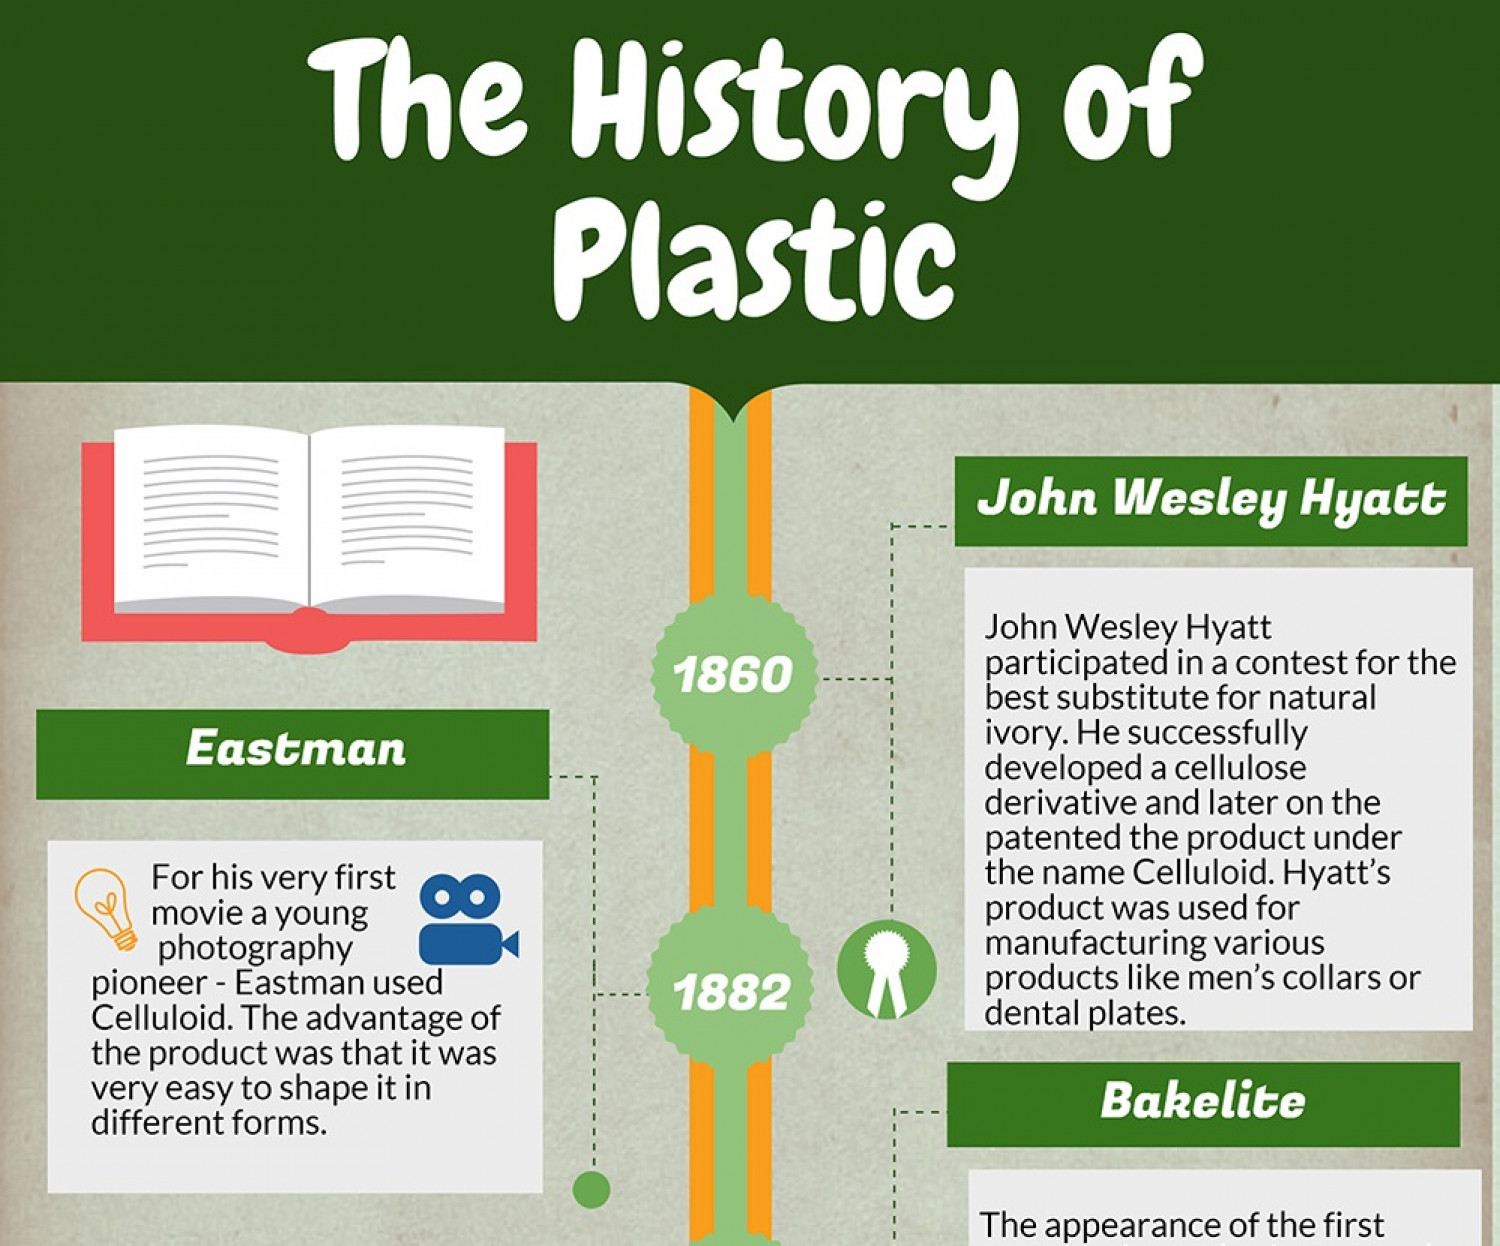 The History of Plastic Infographic